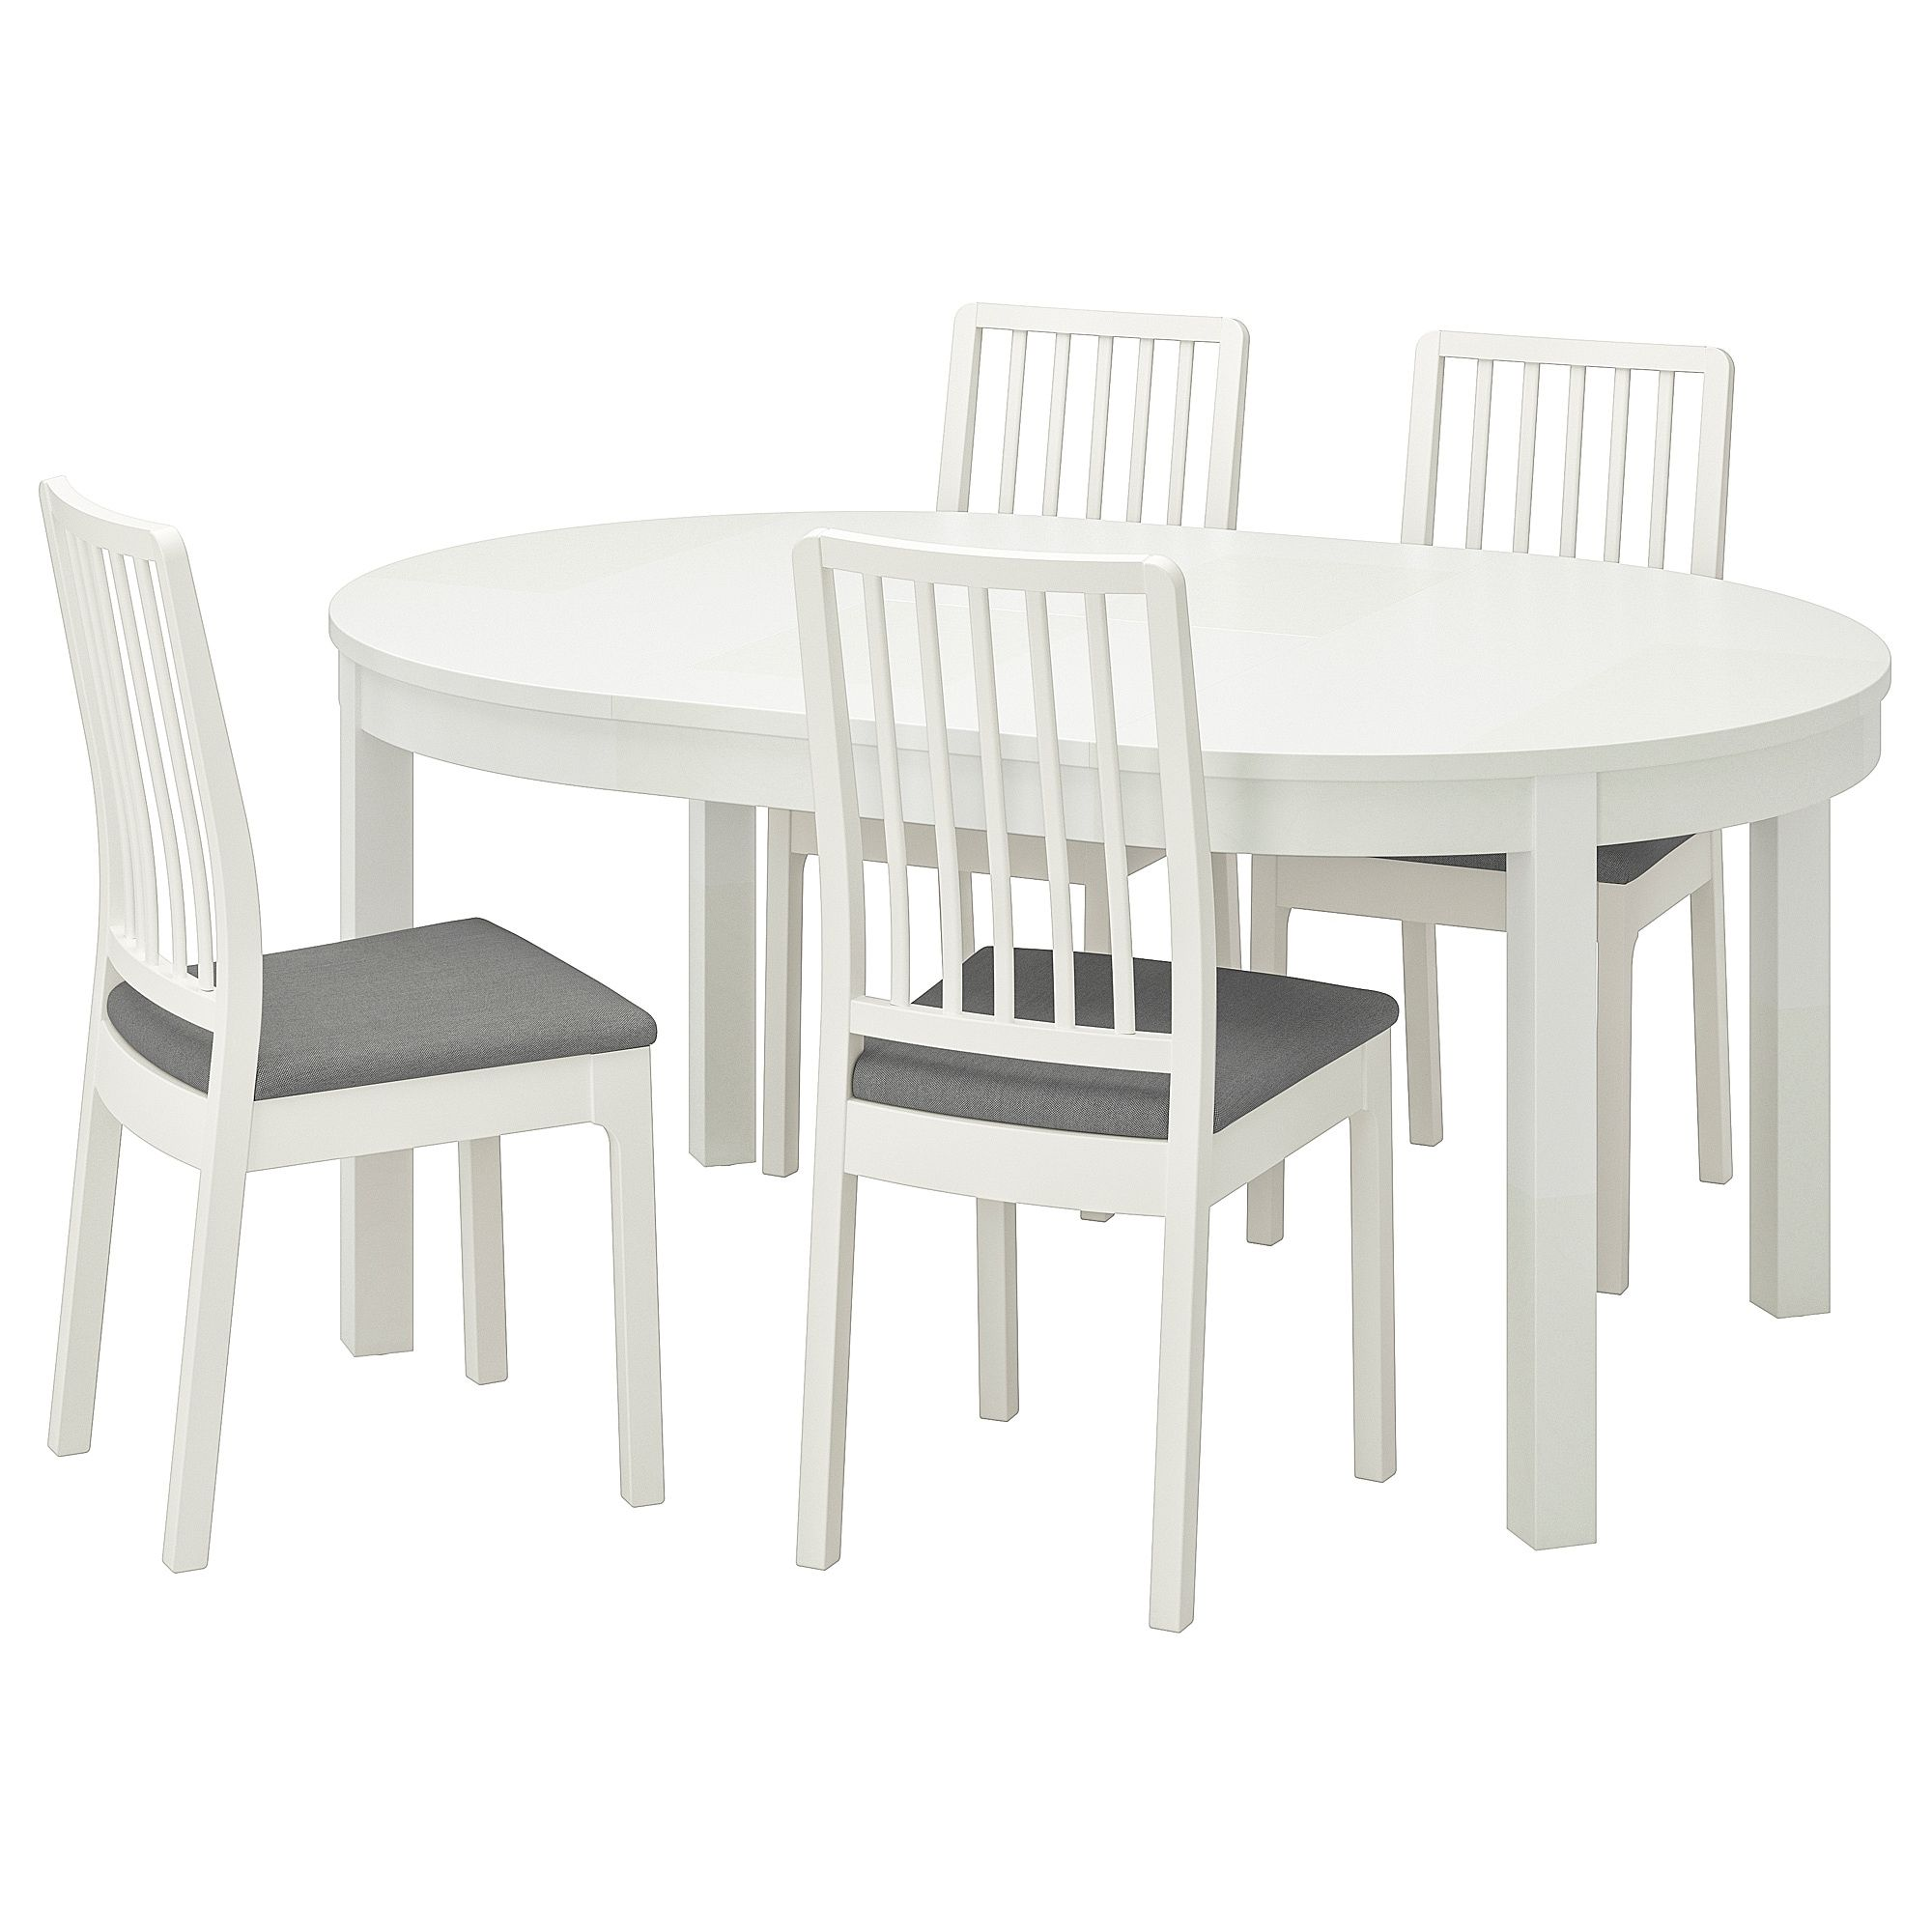 Ikea Bjursta Ekedalen Table And 4 Chairs Dining Table Table